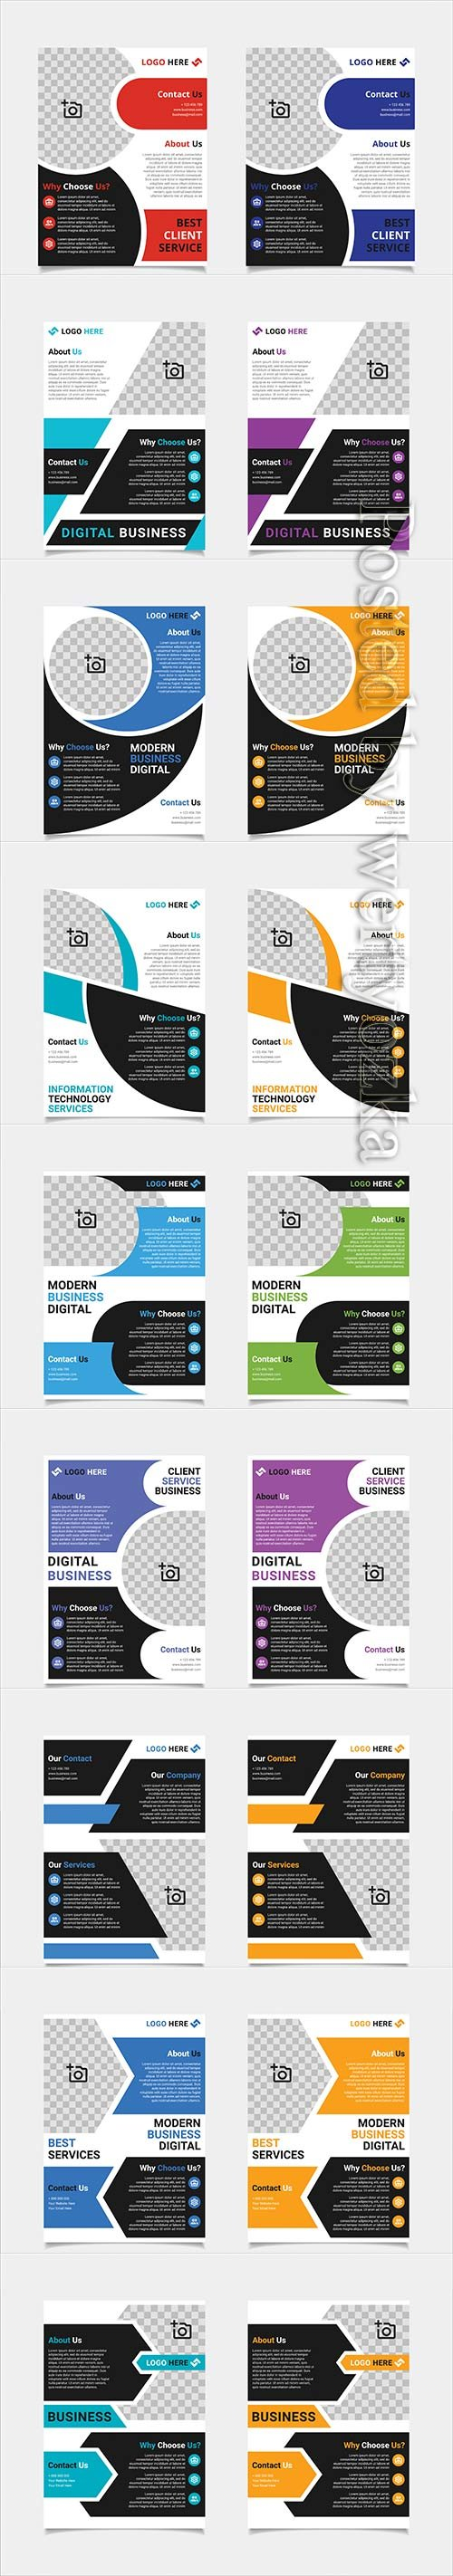 Business brochure and flyer vector design template, business company poster